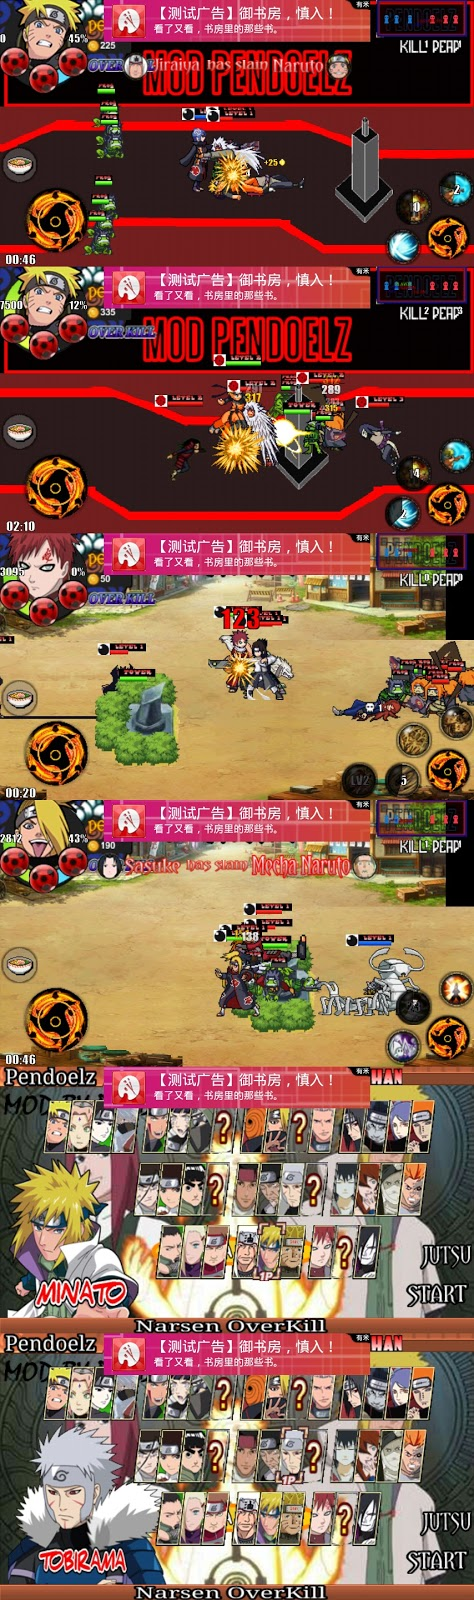 Game Naruto Senki Overkill Second Version